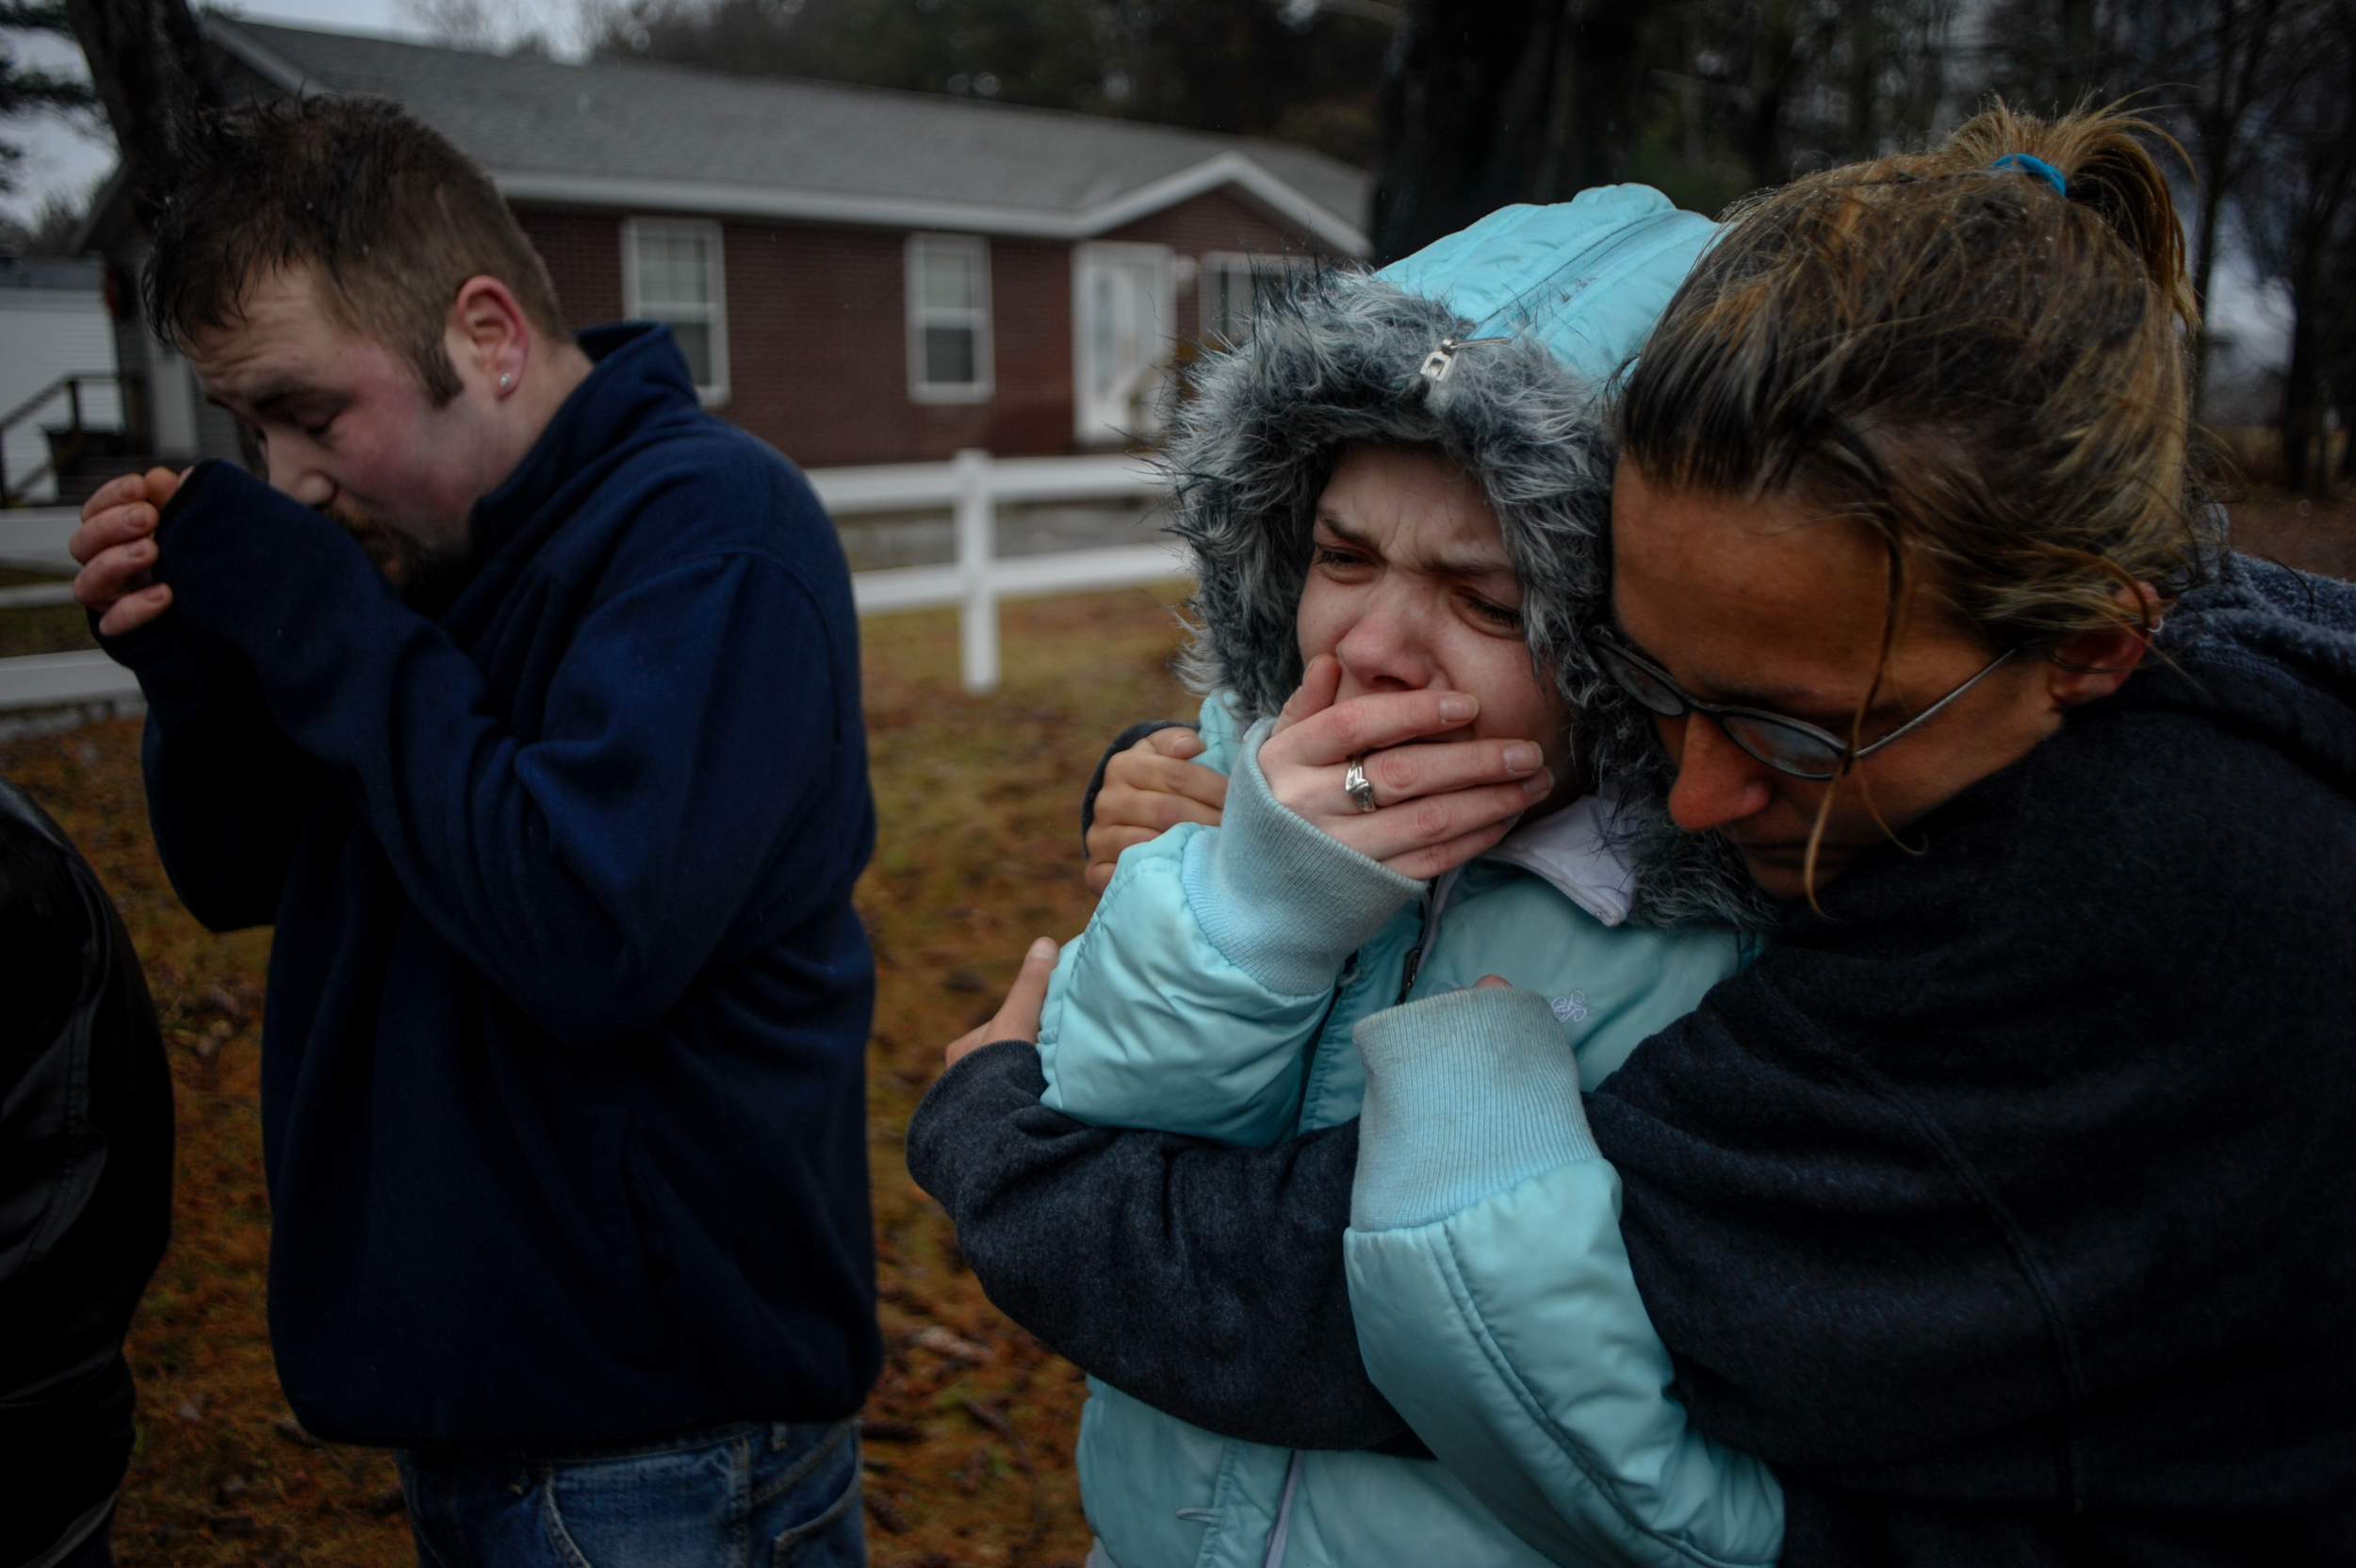 Debra Wallace is comforted by her friend Patti Linton during a fire at the Lee Township home of her ex-husband, Troy Faylor, that took the life of Jasmine Faylor, 3, their daughter. Midland County Sheriff Jerry Nielsen notified Wallace that her daughter had passed away.